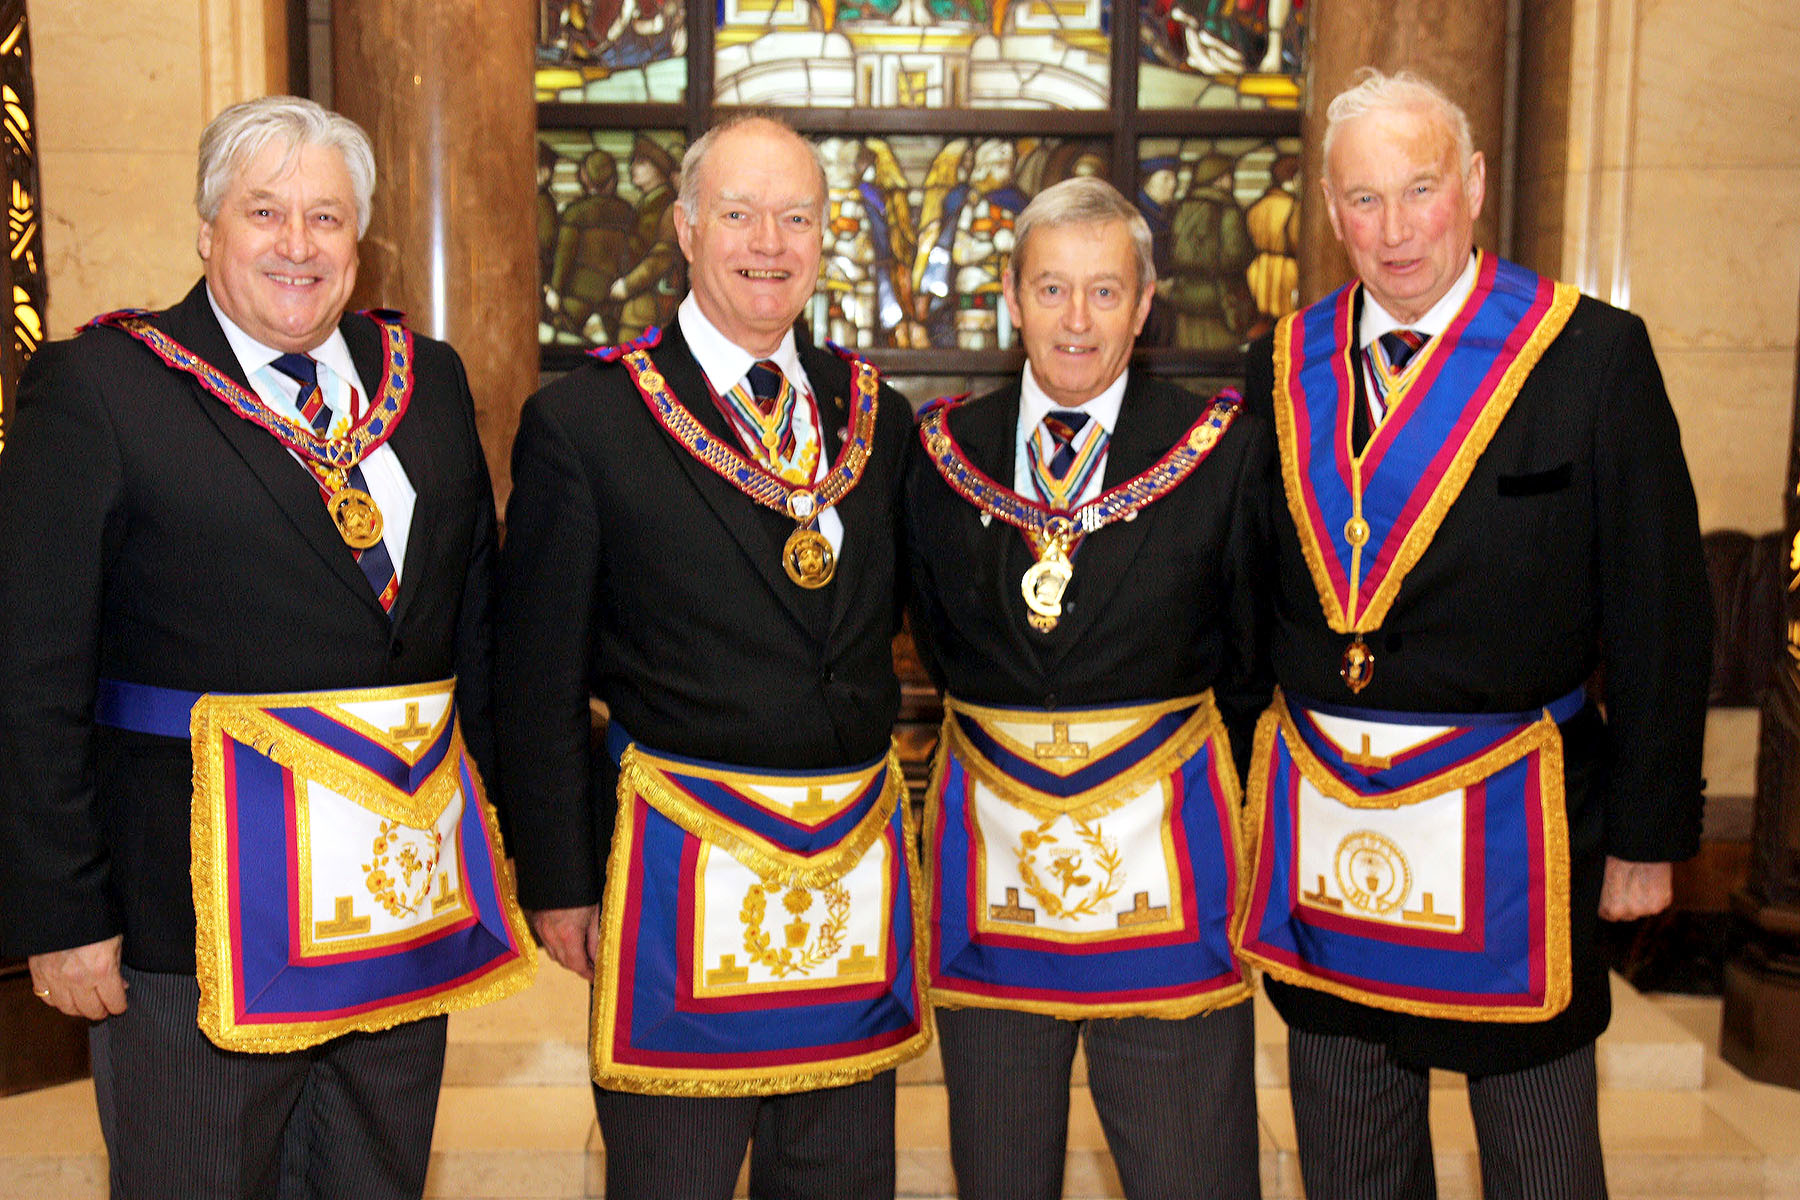 The March Communication of Grand Lodge